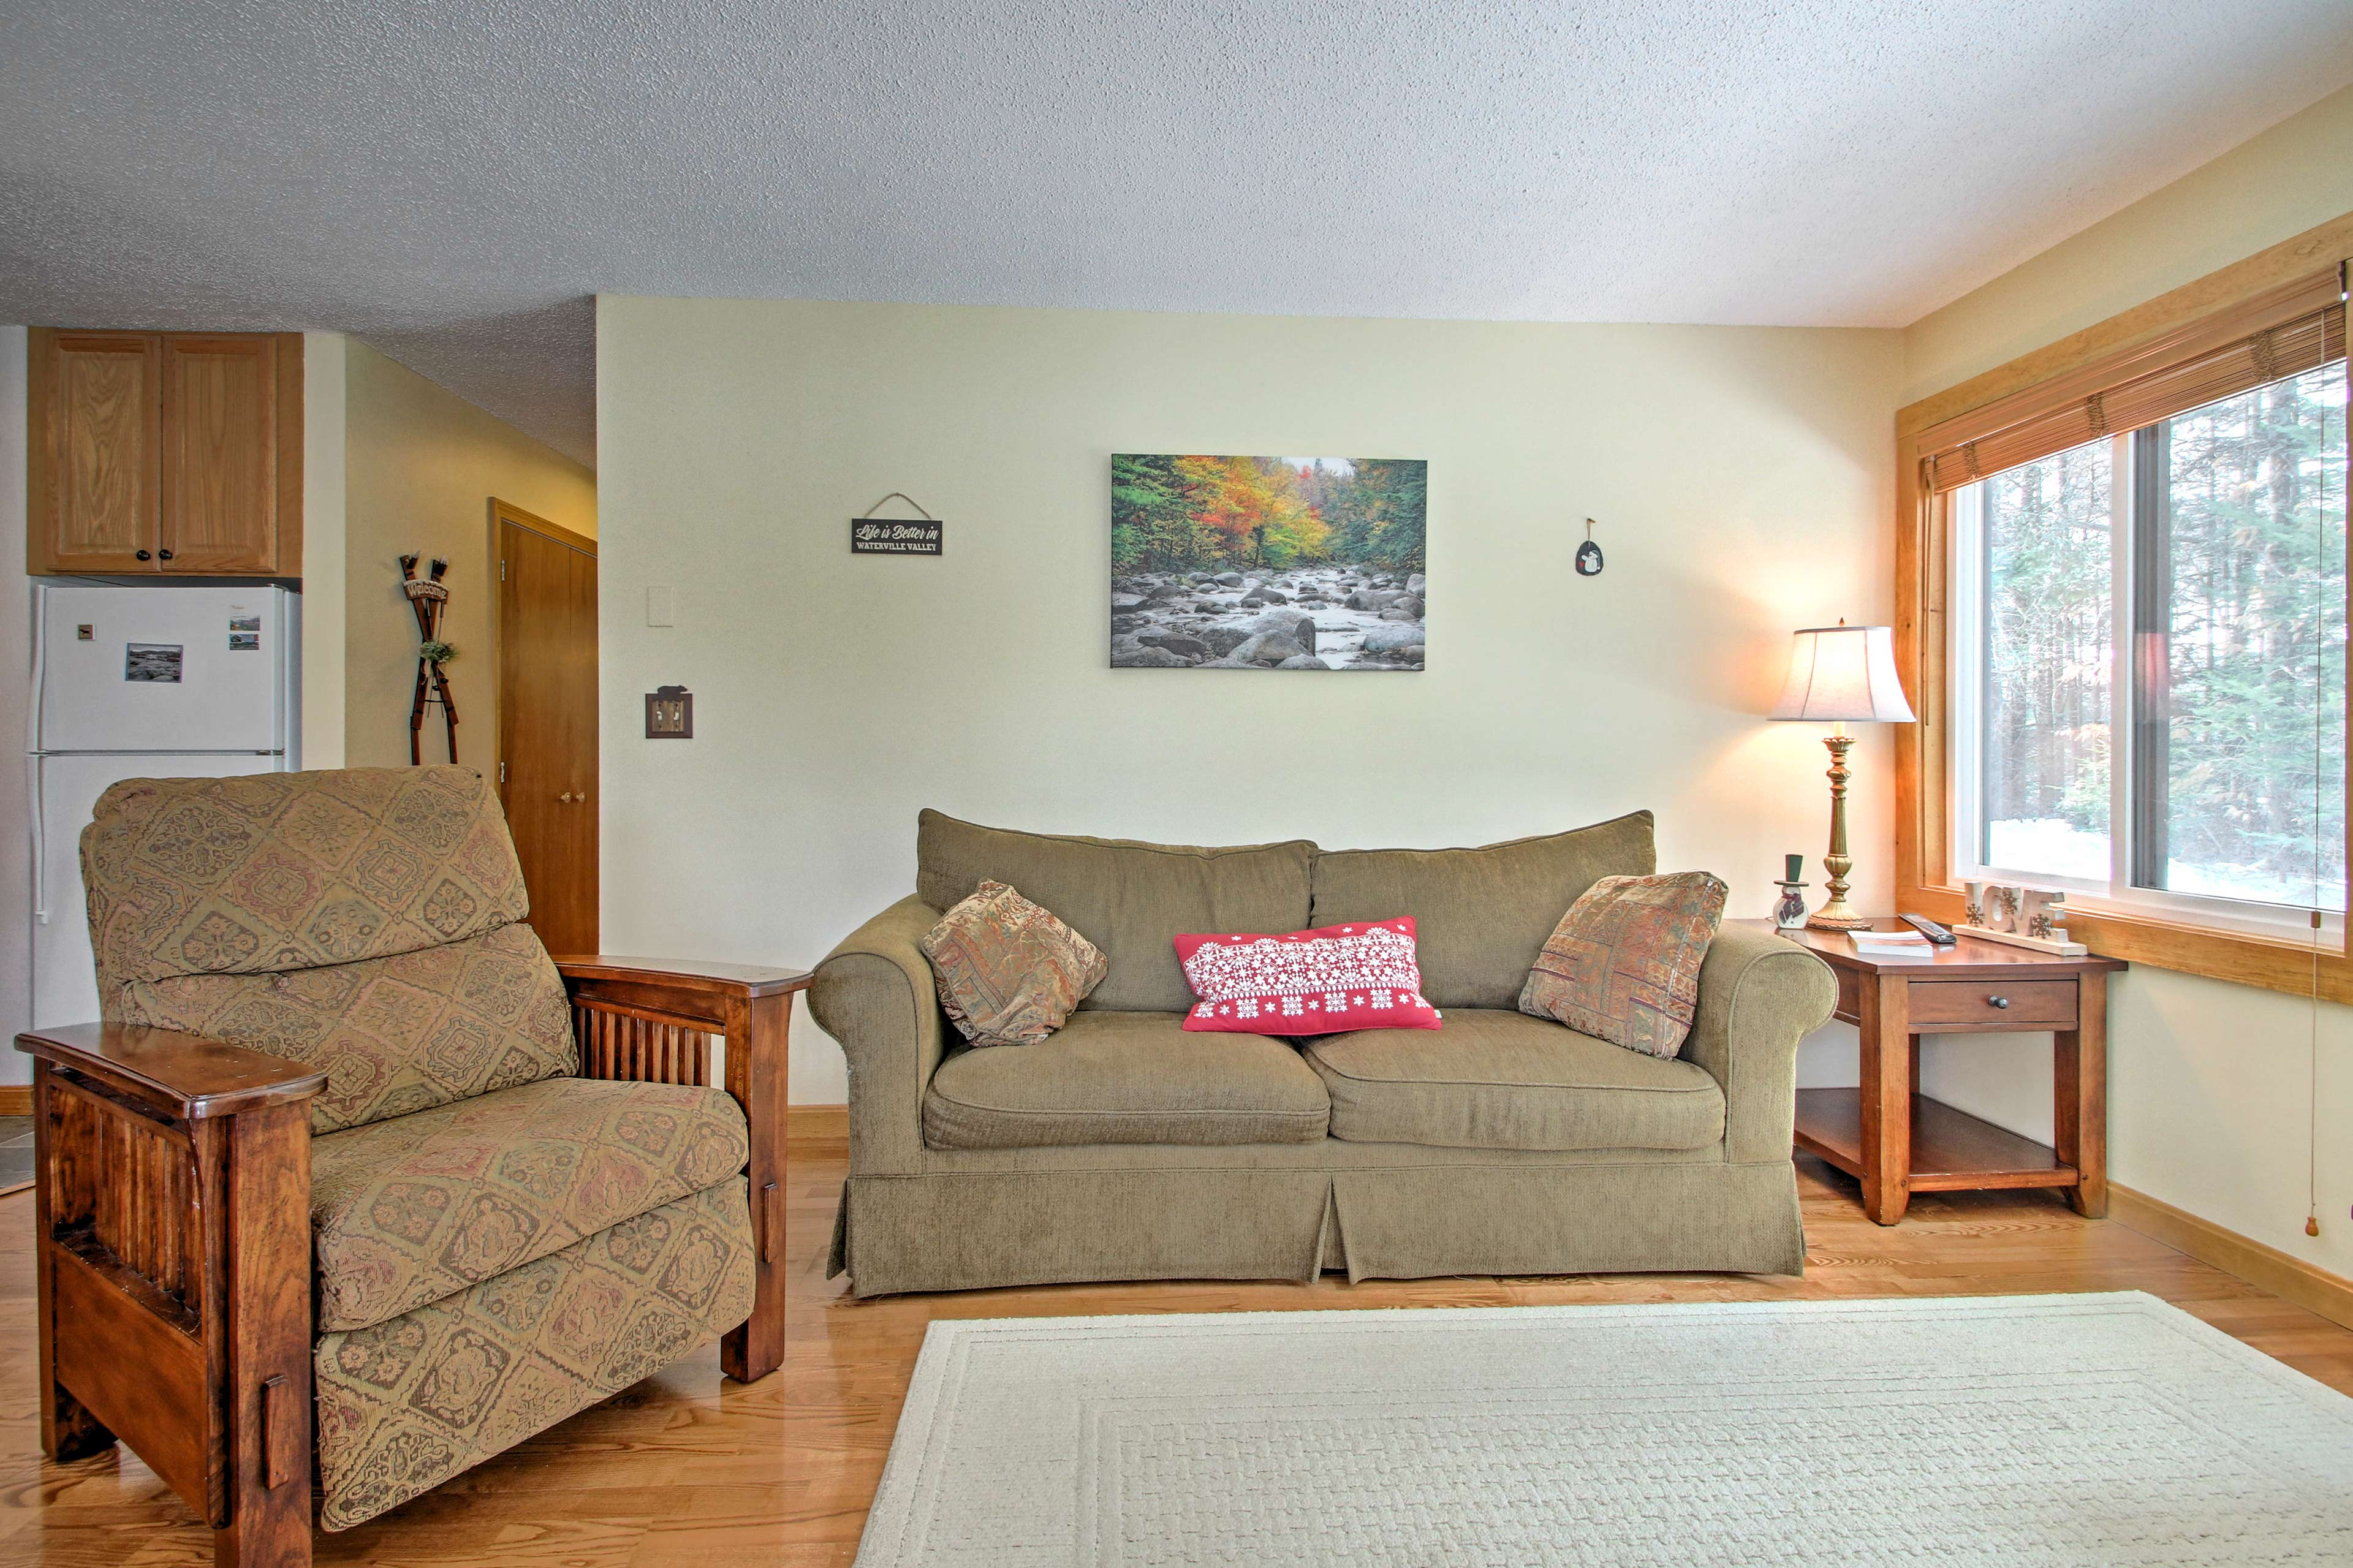 As you lounge on the plush couch you'll be bathed in natural light.